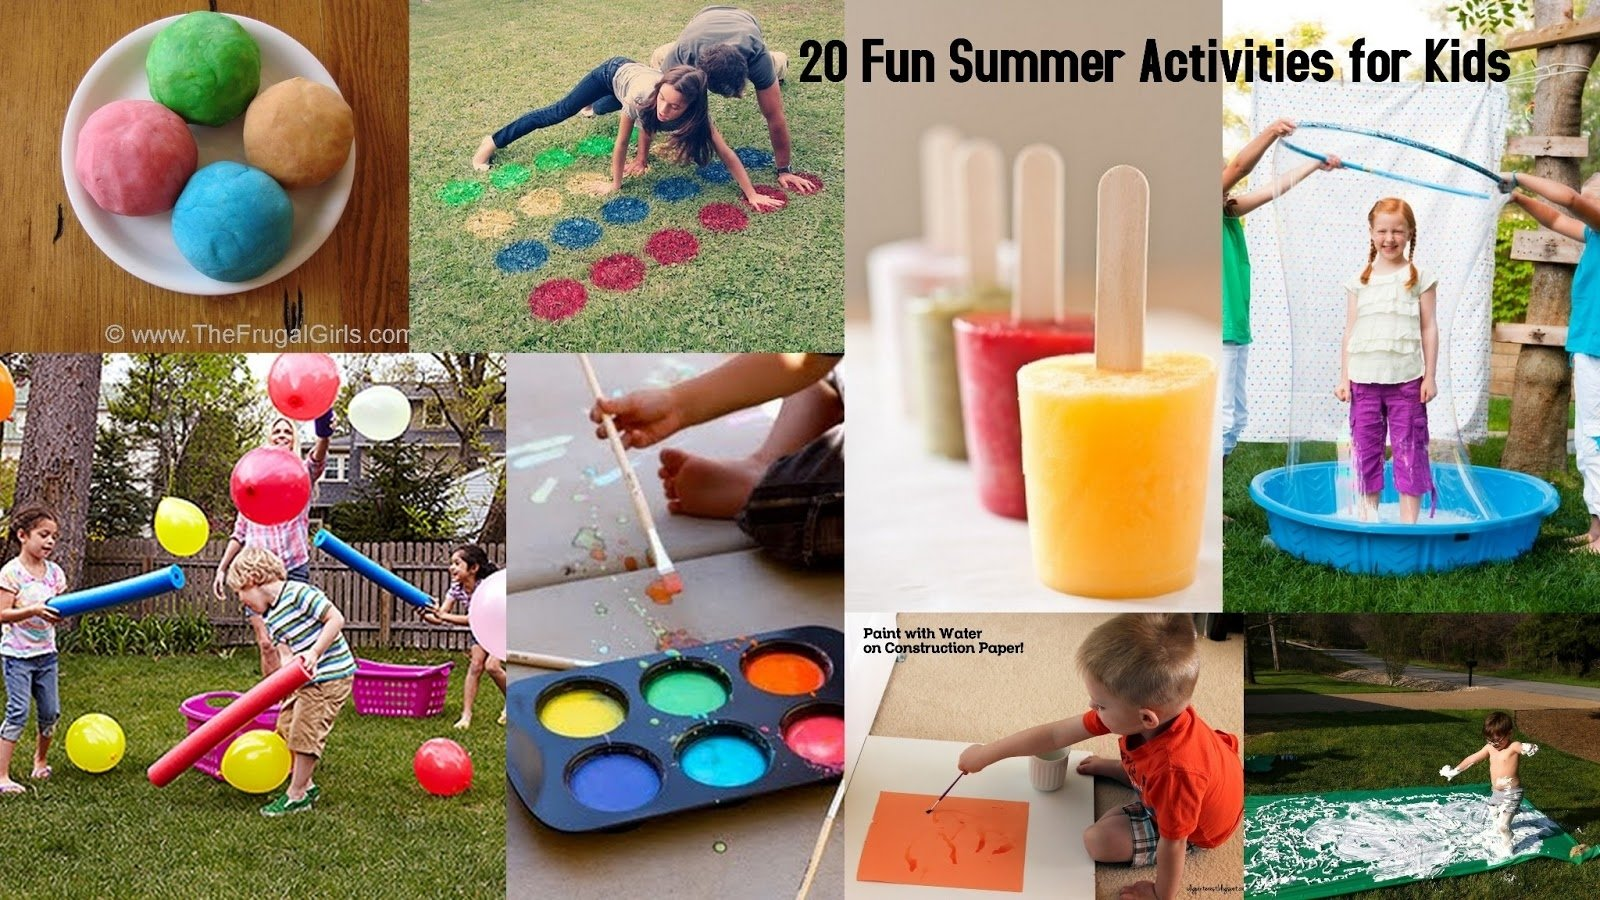 10 Most Recommended Summer Fun Ideas For Kids 20 fun summer activities for kids i dig pinterest 2020